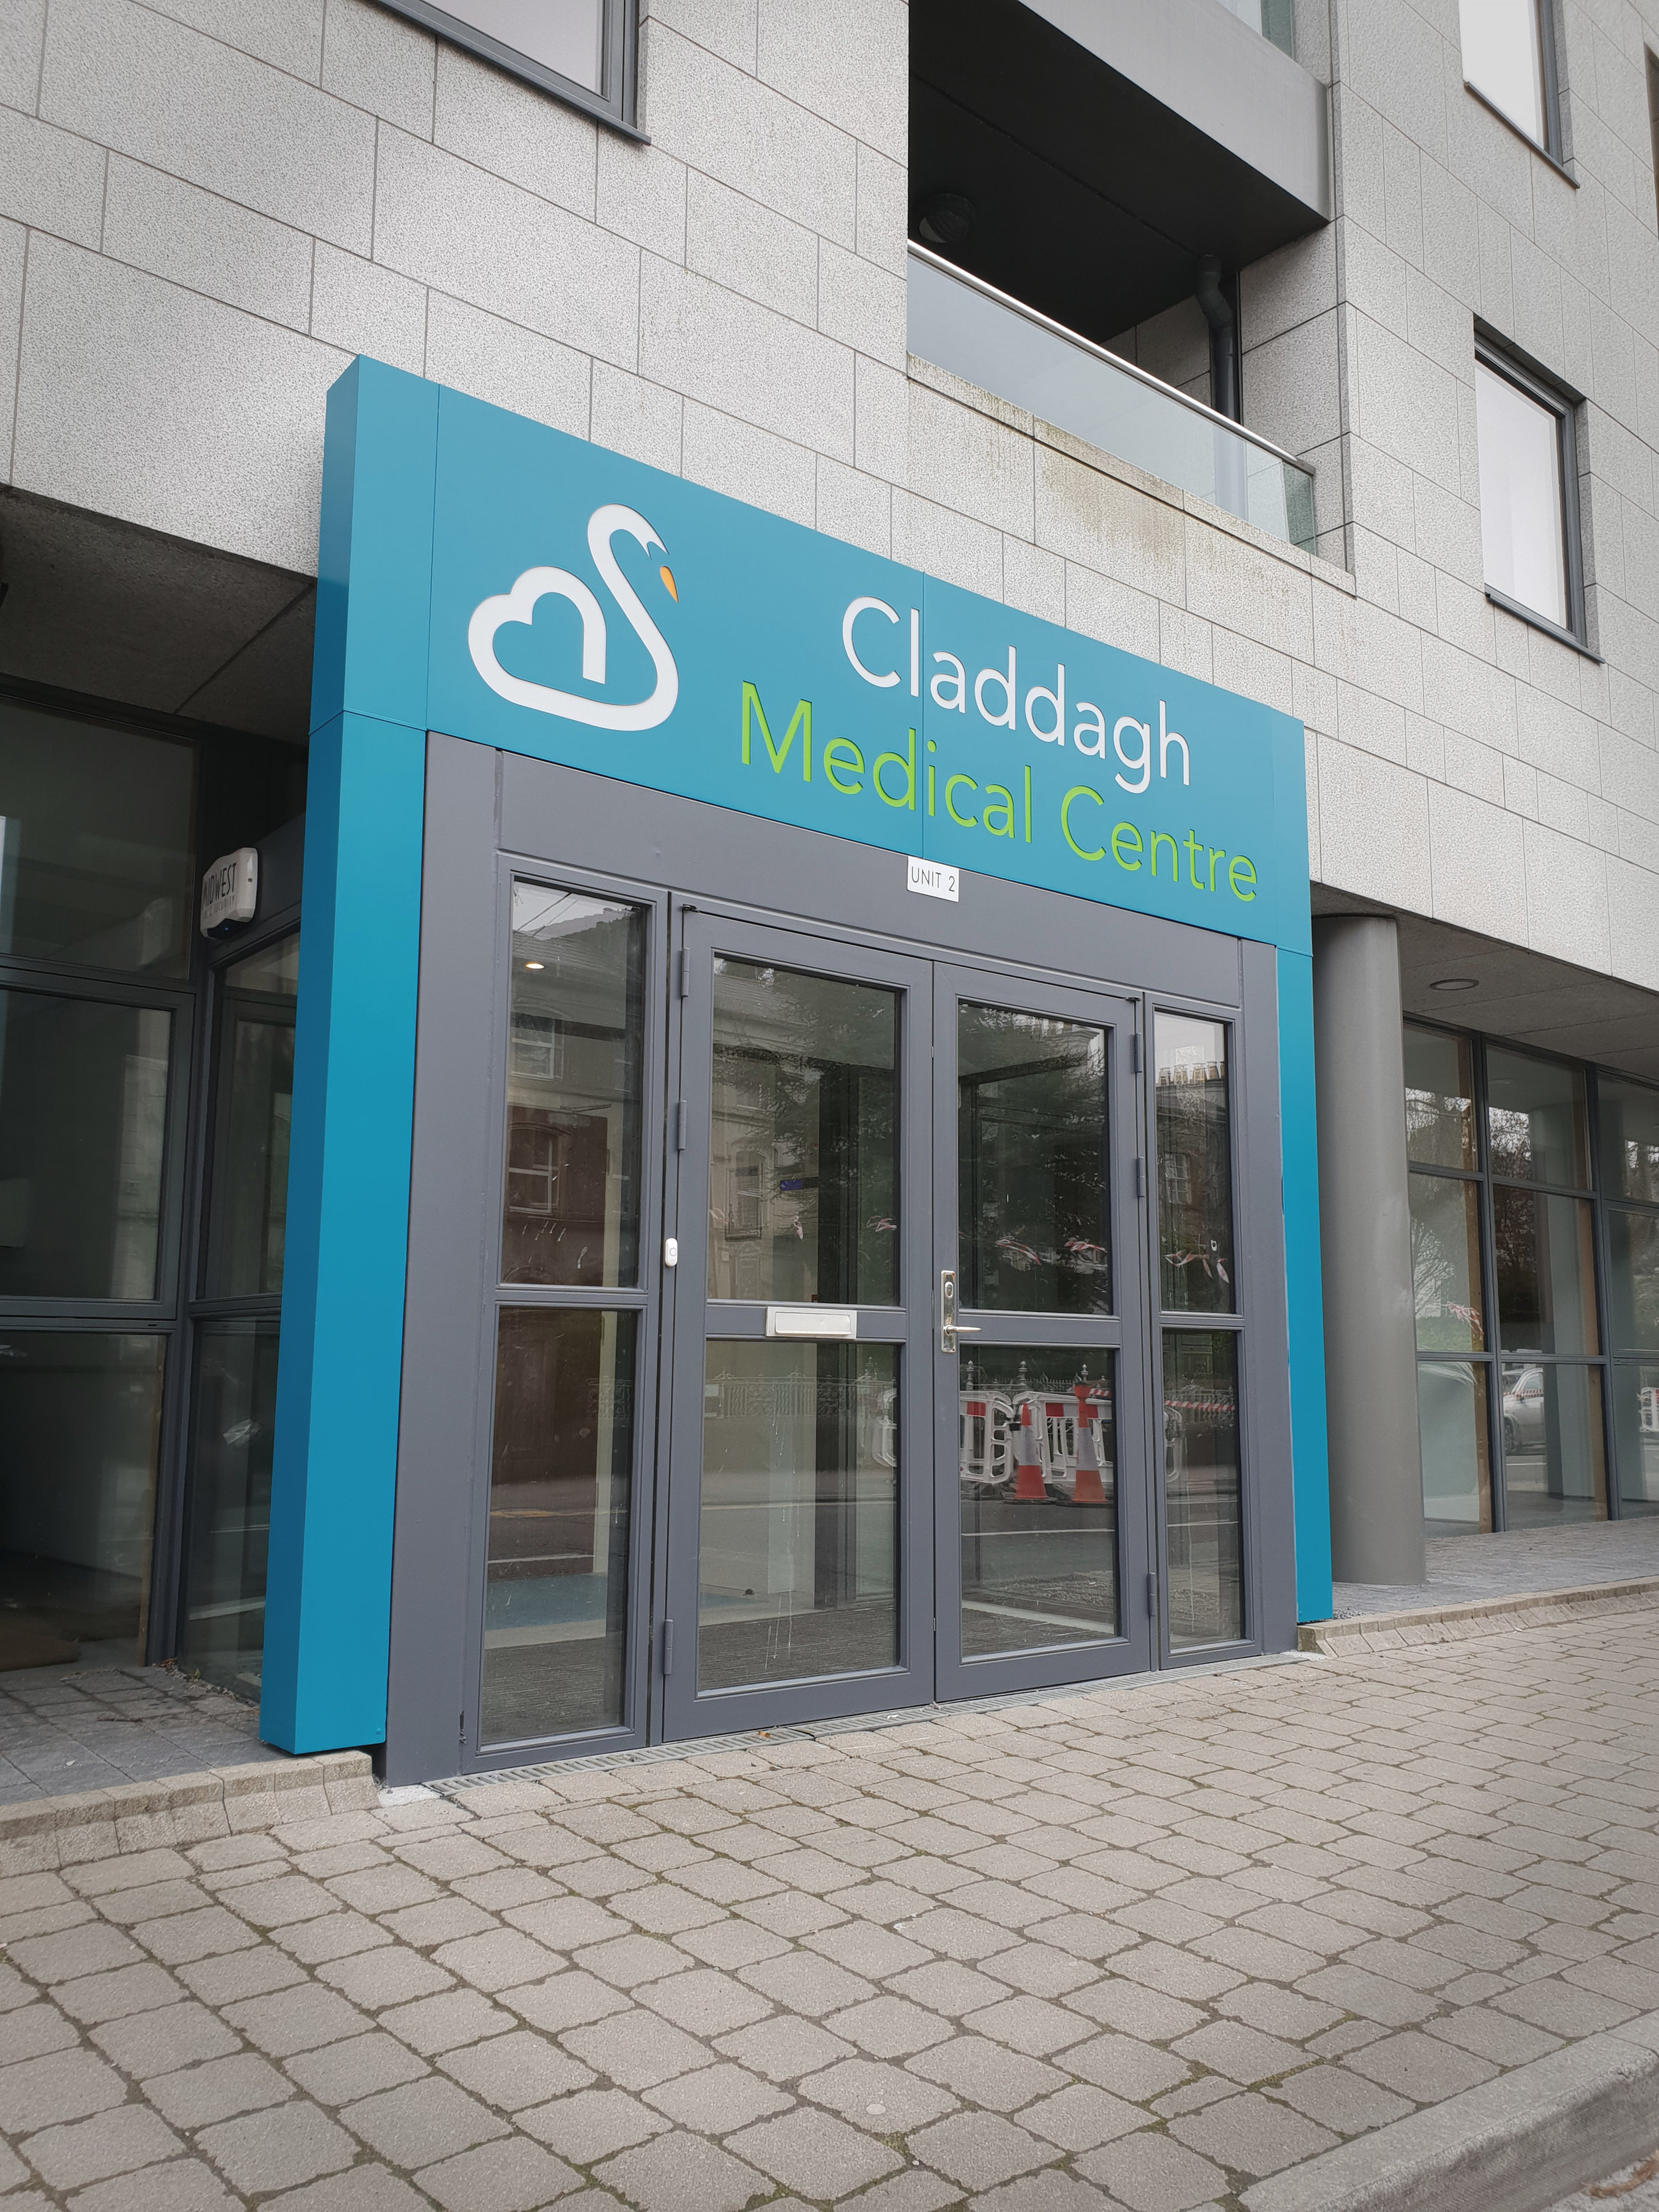 Claddagh Medical Centre, The Crescent, Galway